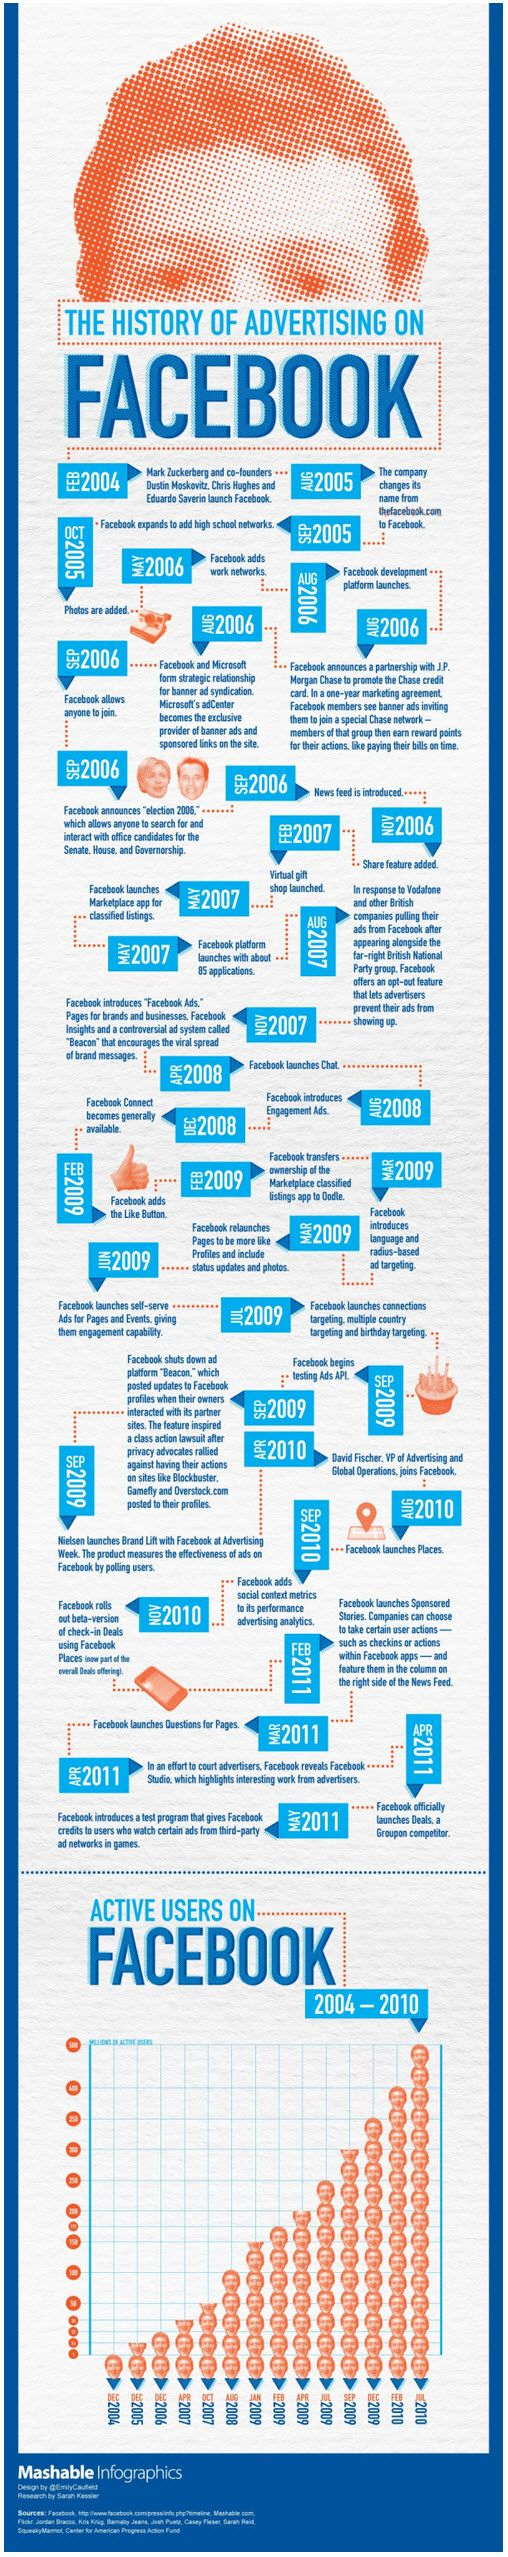 The History of Advertising on Facebook Infographic. #twitter , #socialmedia  , #infographic